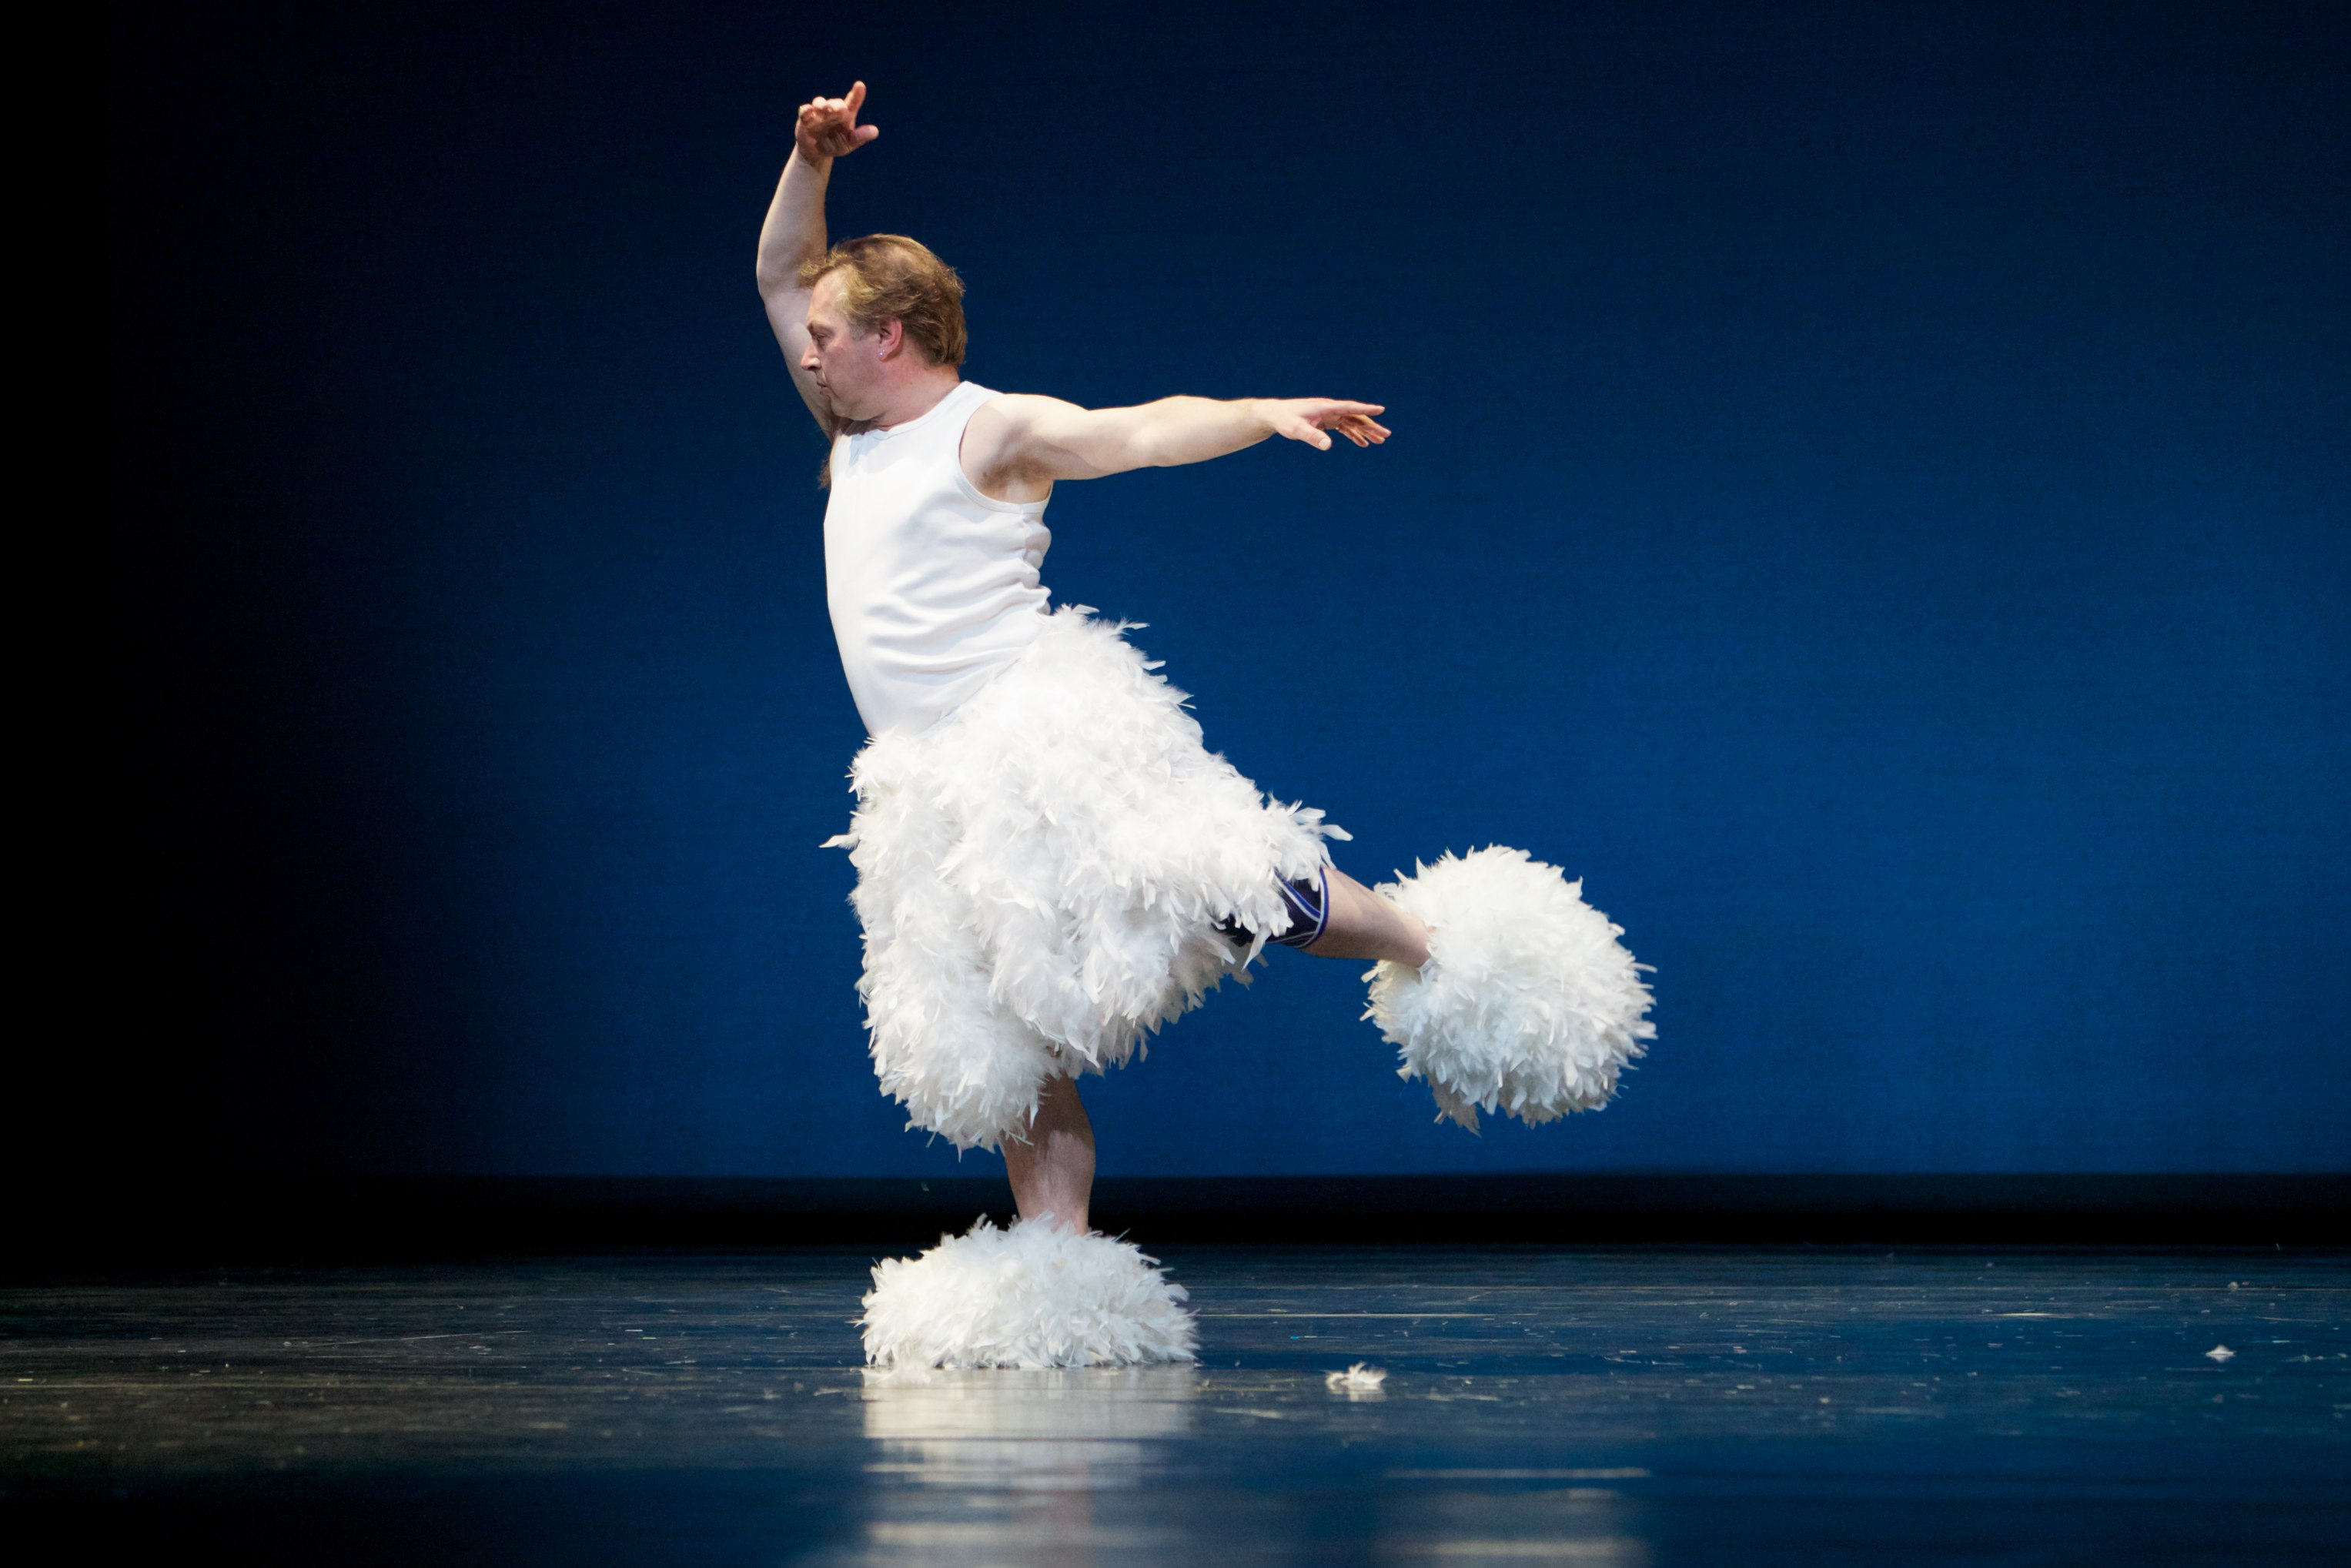 male dancer in white tutu and fluffy slippers